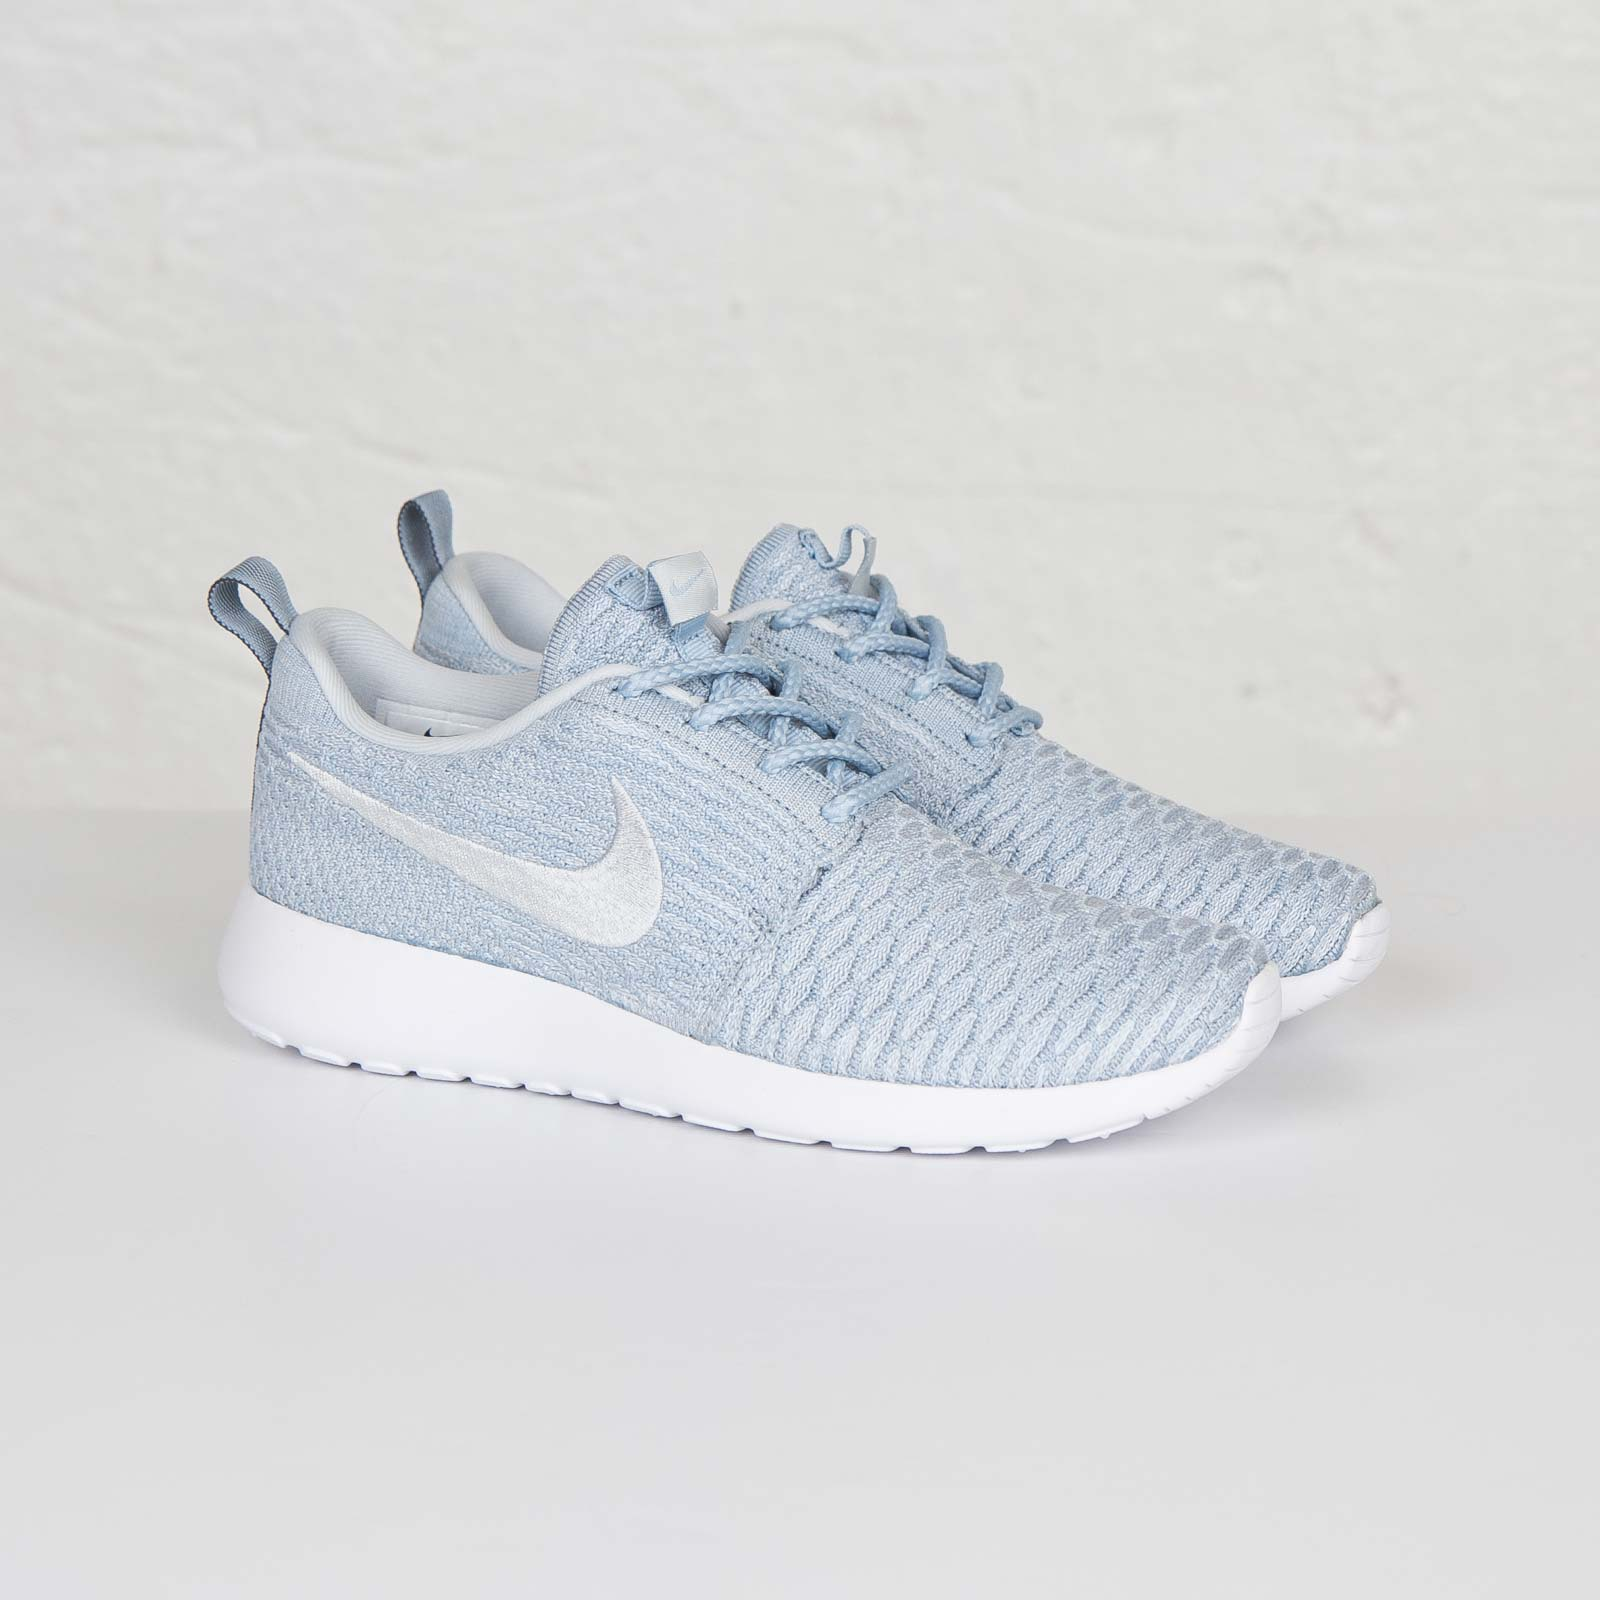 100% authentic 908d7 e0f91 Nike Wmns Roshe One Flyknit